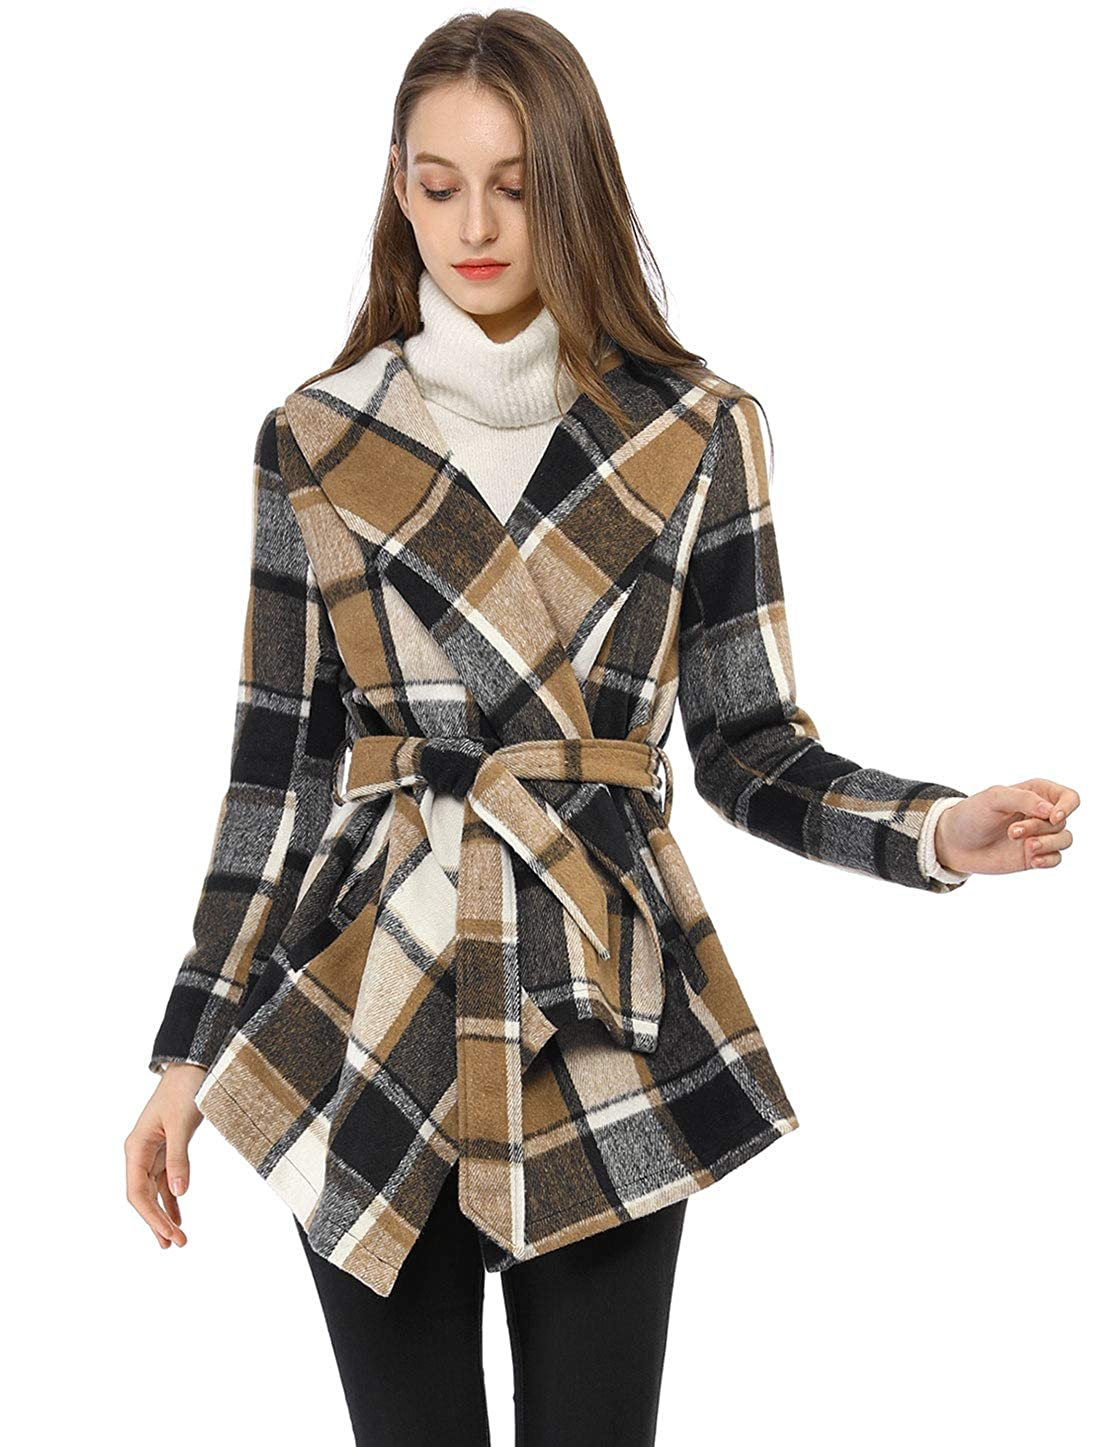 29c9ccbd091 Amazon.com  Allegra K Women s Turn Down Collar Asymmetric Hem Plaids Wrap  Coat  Clothing